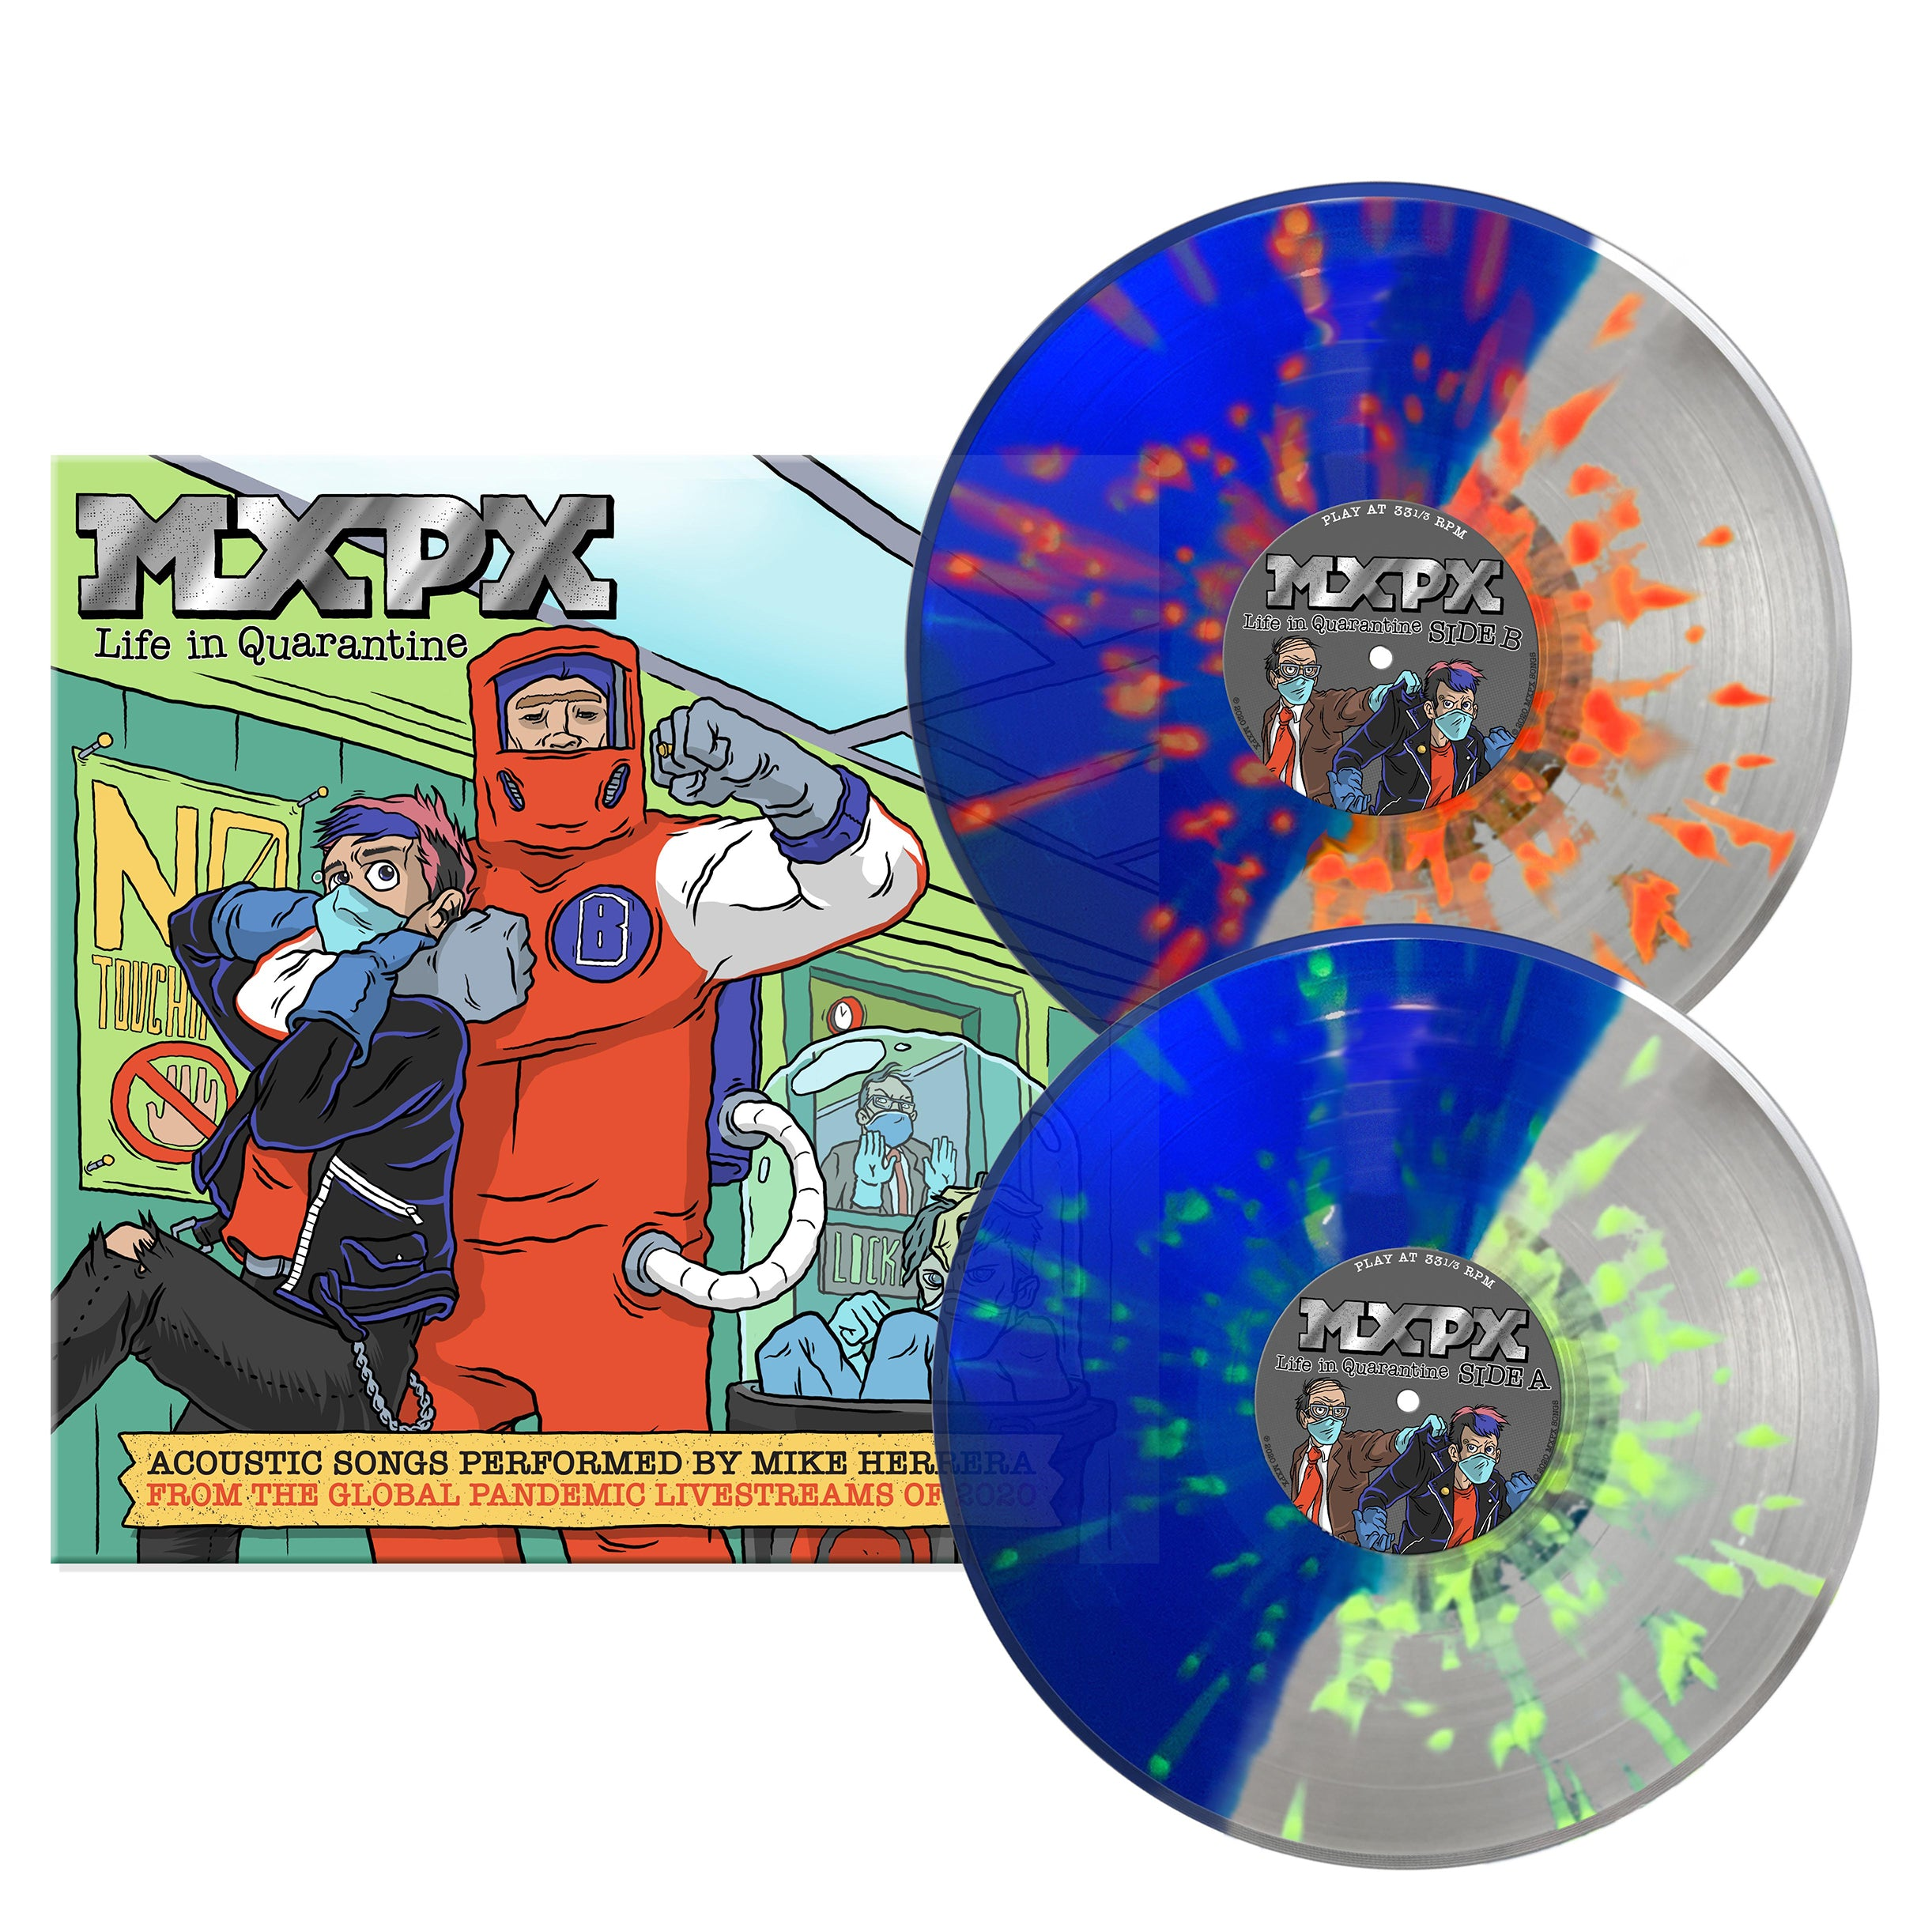 VINYL -LIFE IN QUARANTINE - LIMITED EDITION - PRE ORDER